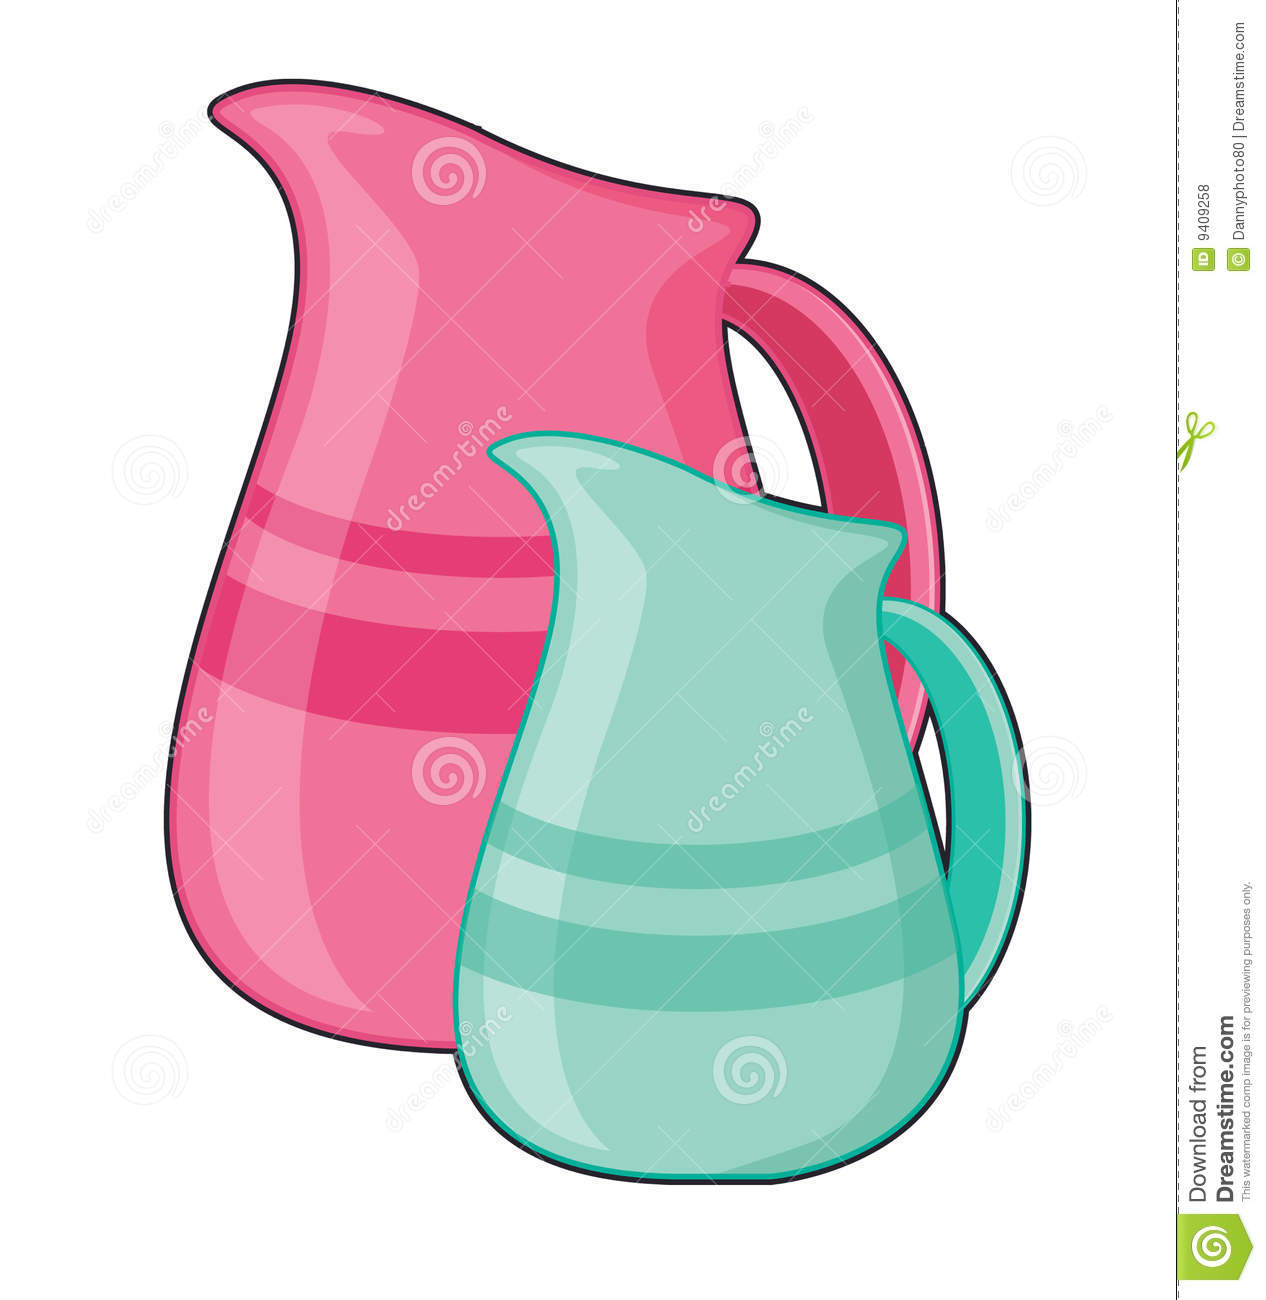 Pouring Jugs Royalty Free Stock Photos - Image: 9409258